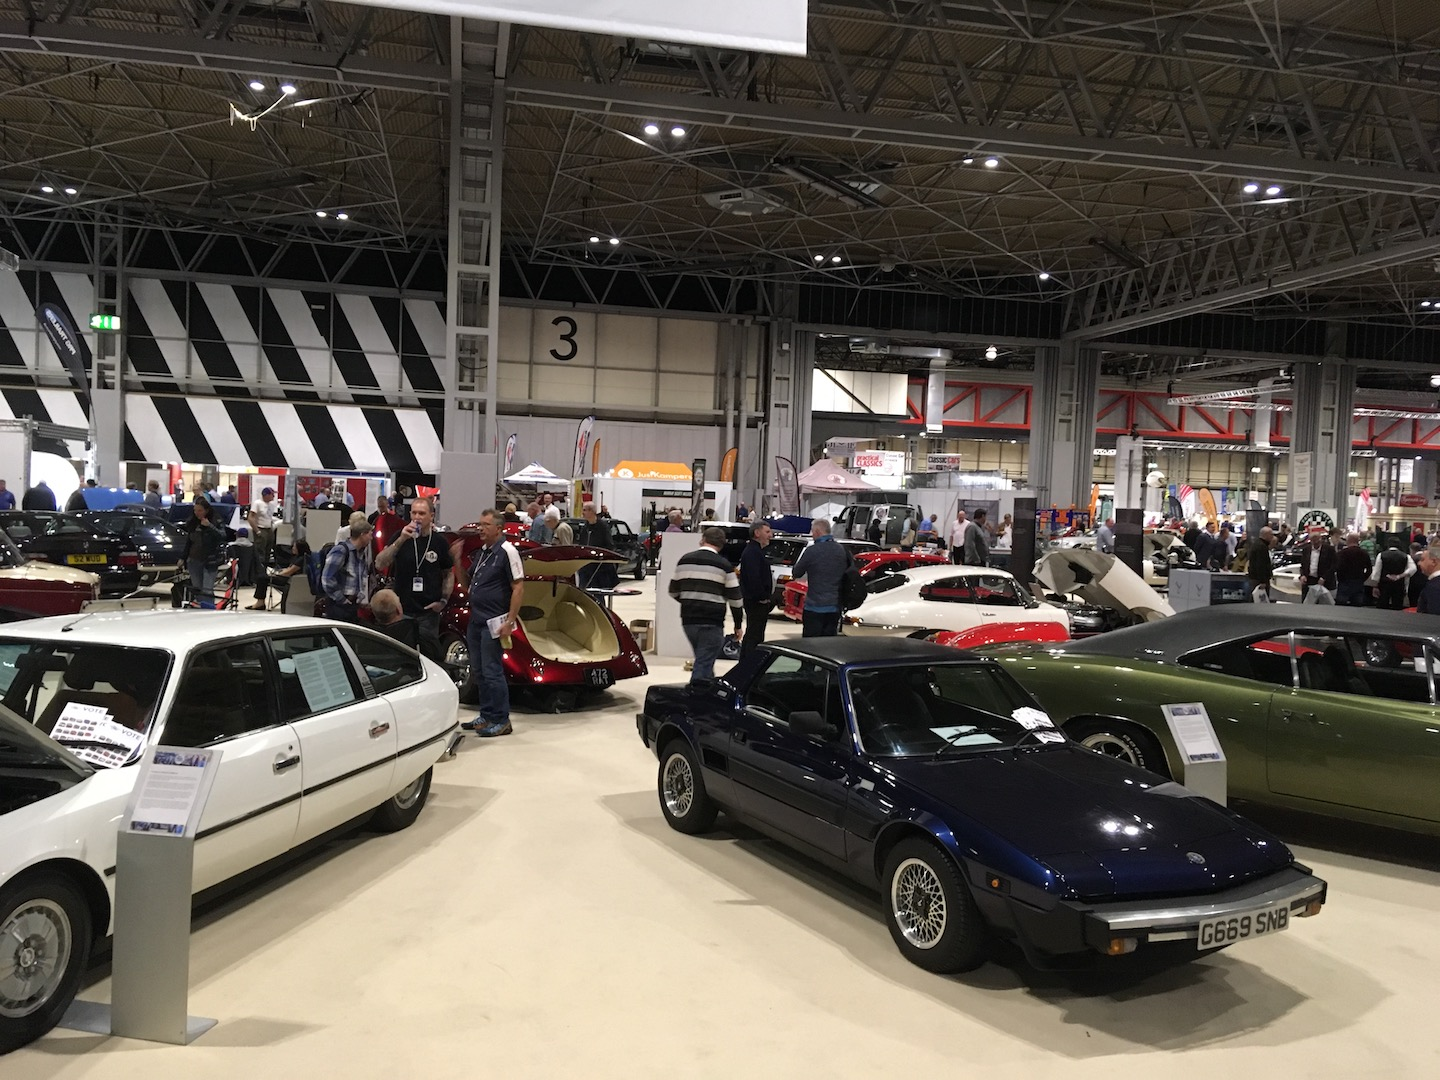 Enthusiasts Garage - It all started with a Fiat x19